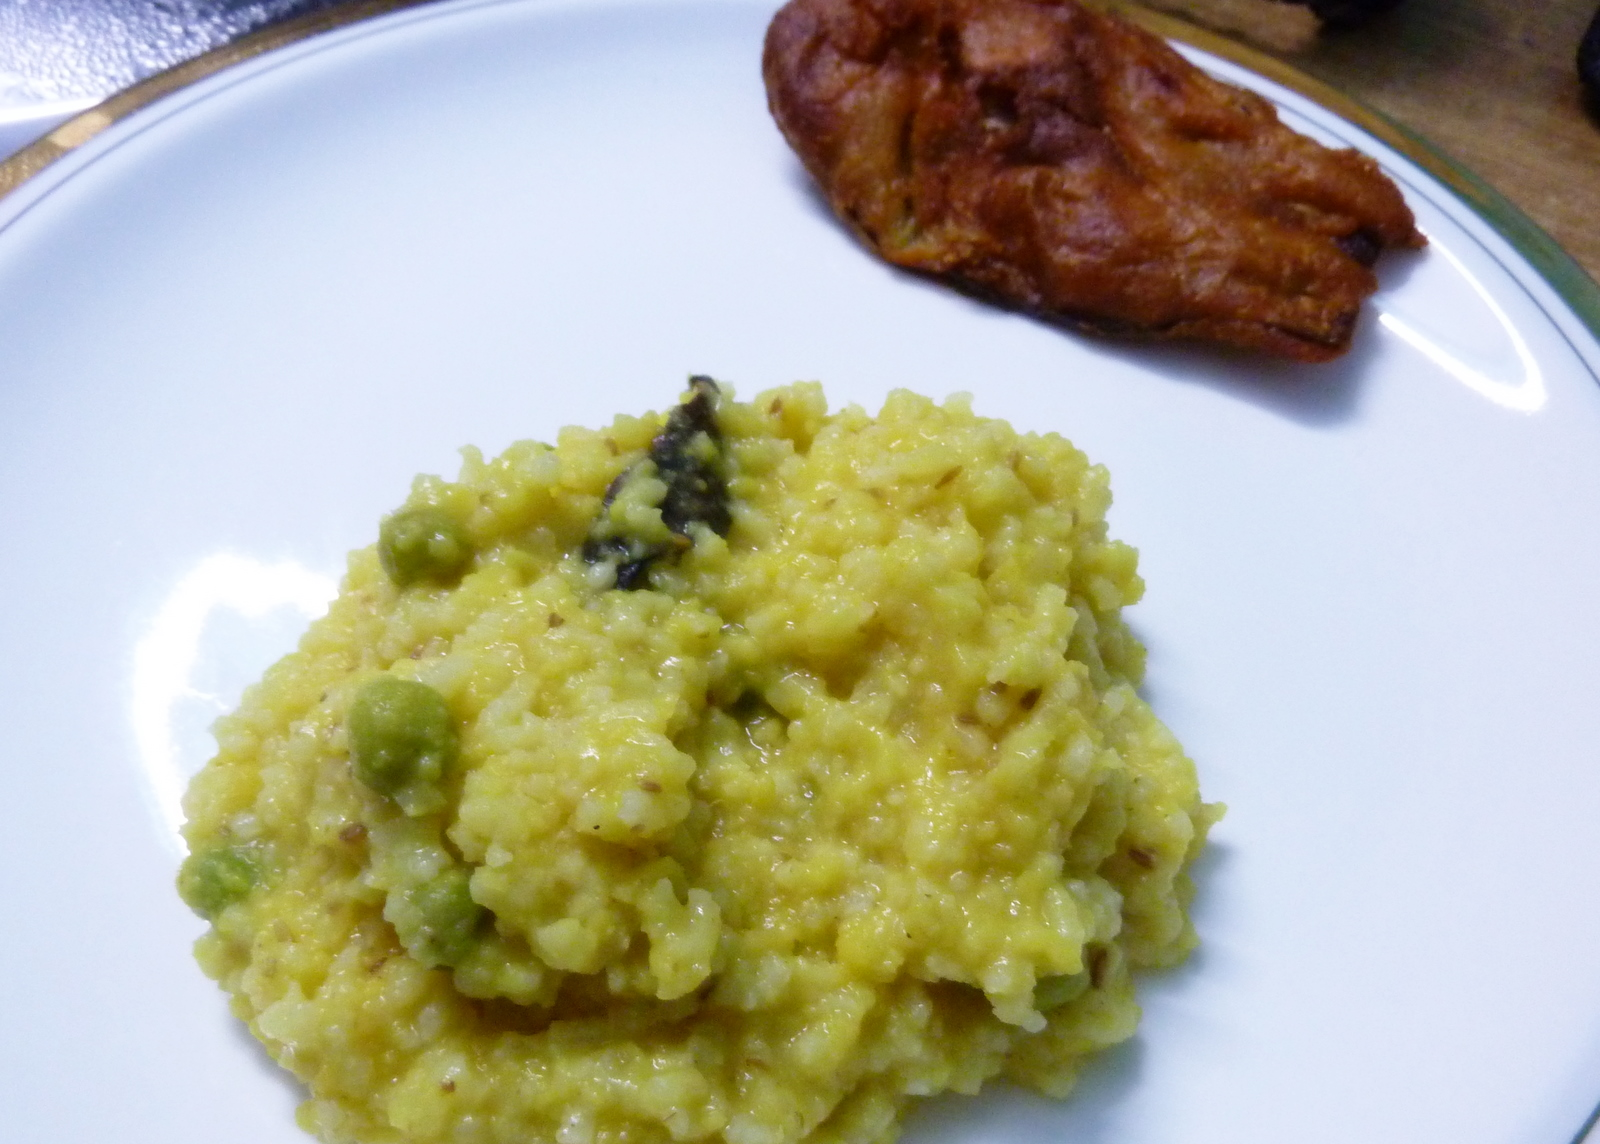 Bengali style moong dal khichuri khichdee beguni recipe moong dal khichdi recipe khichdi is a preparation made from rice ccuart Choice Image